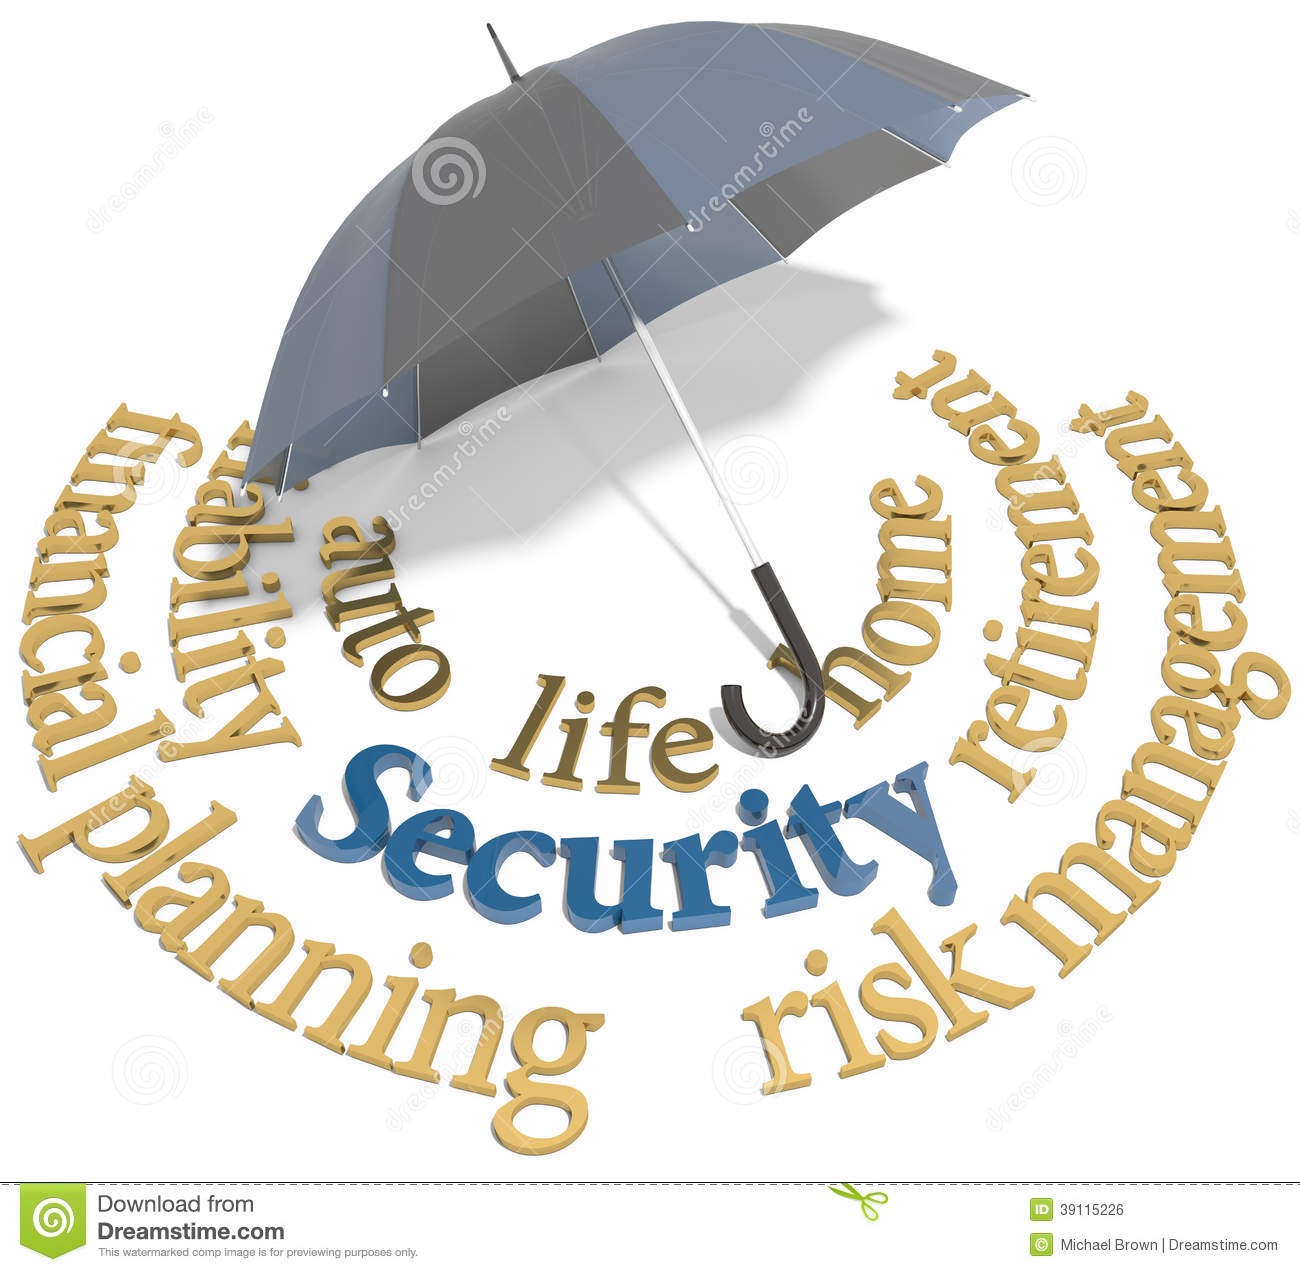 Security financial planning umbrella words stock illustration security financial planning umbrella words buycottarizona Images